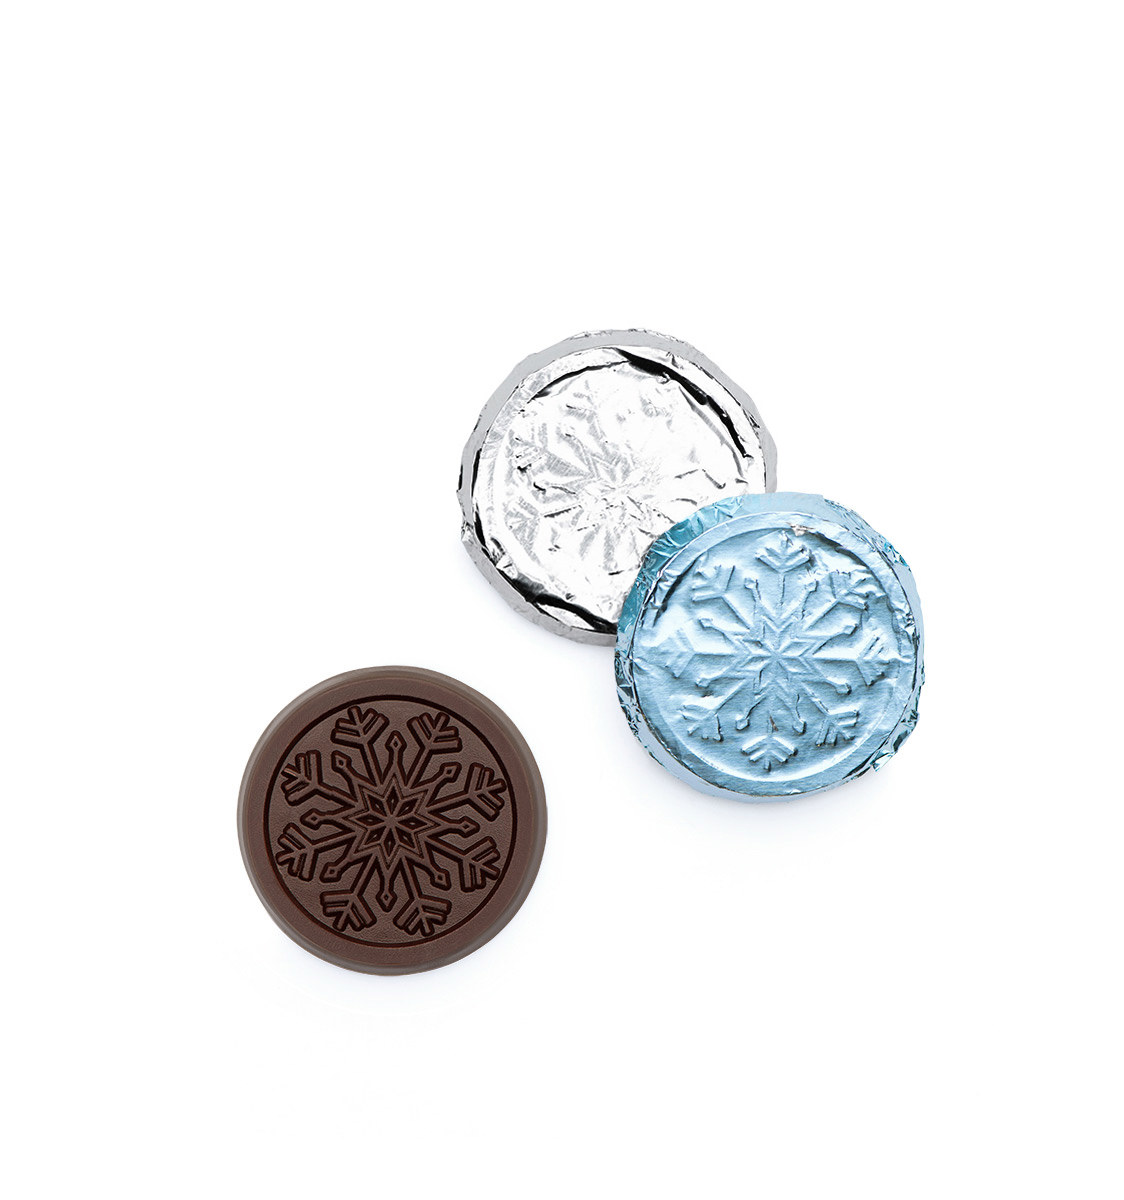 Belgian Dark Chocolate Mixed Foiled Coins Holiday